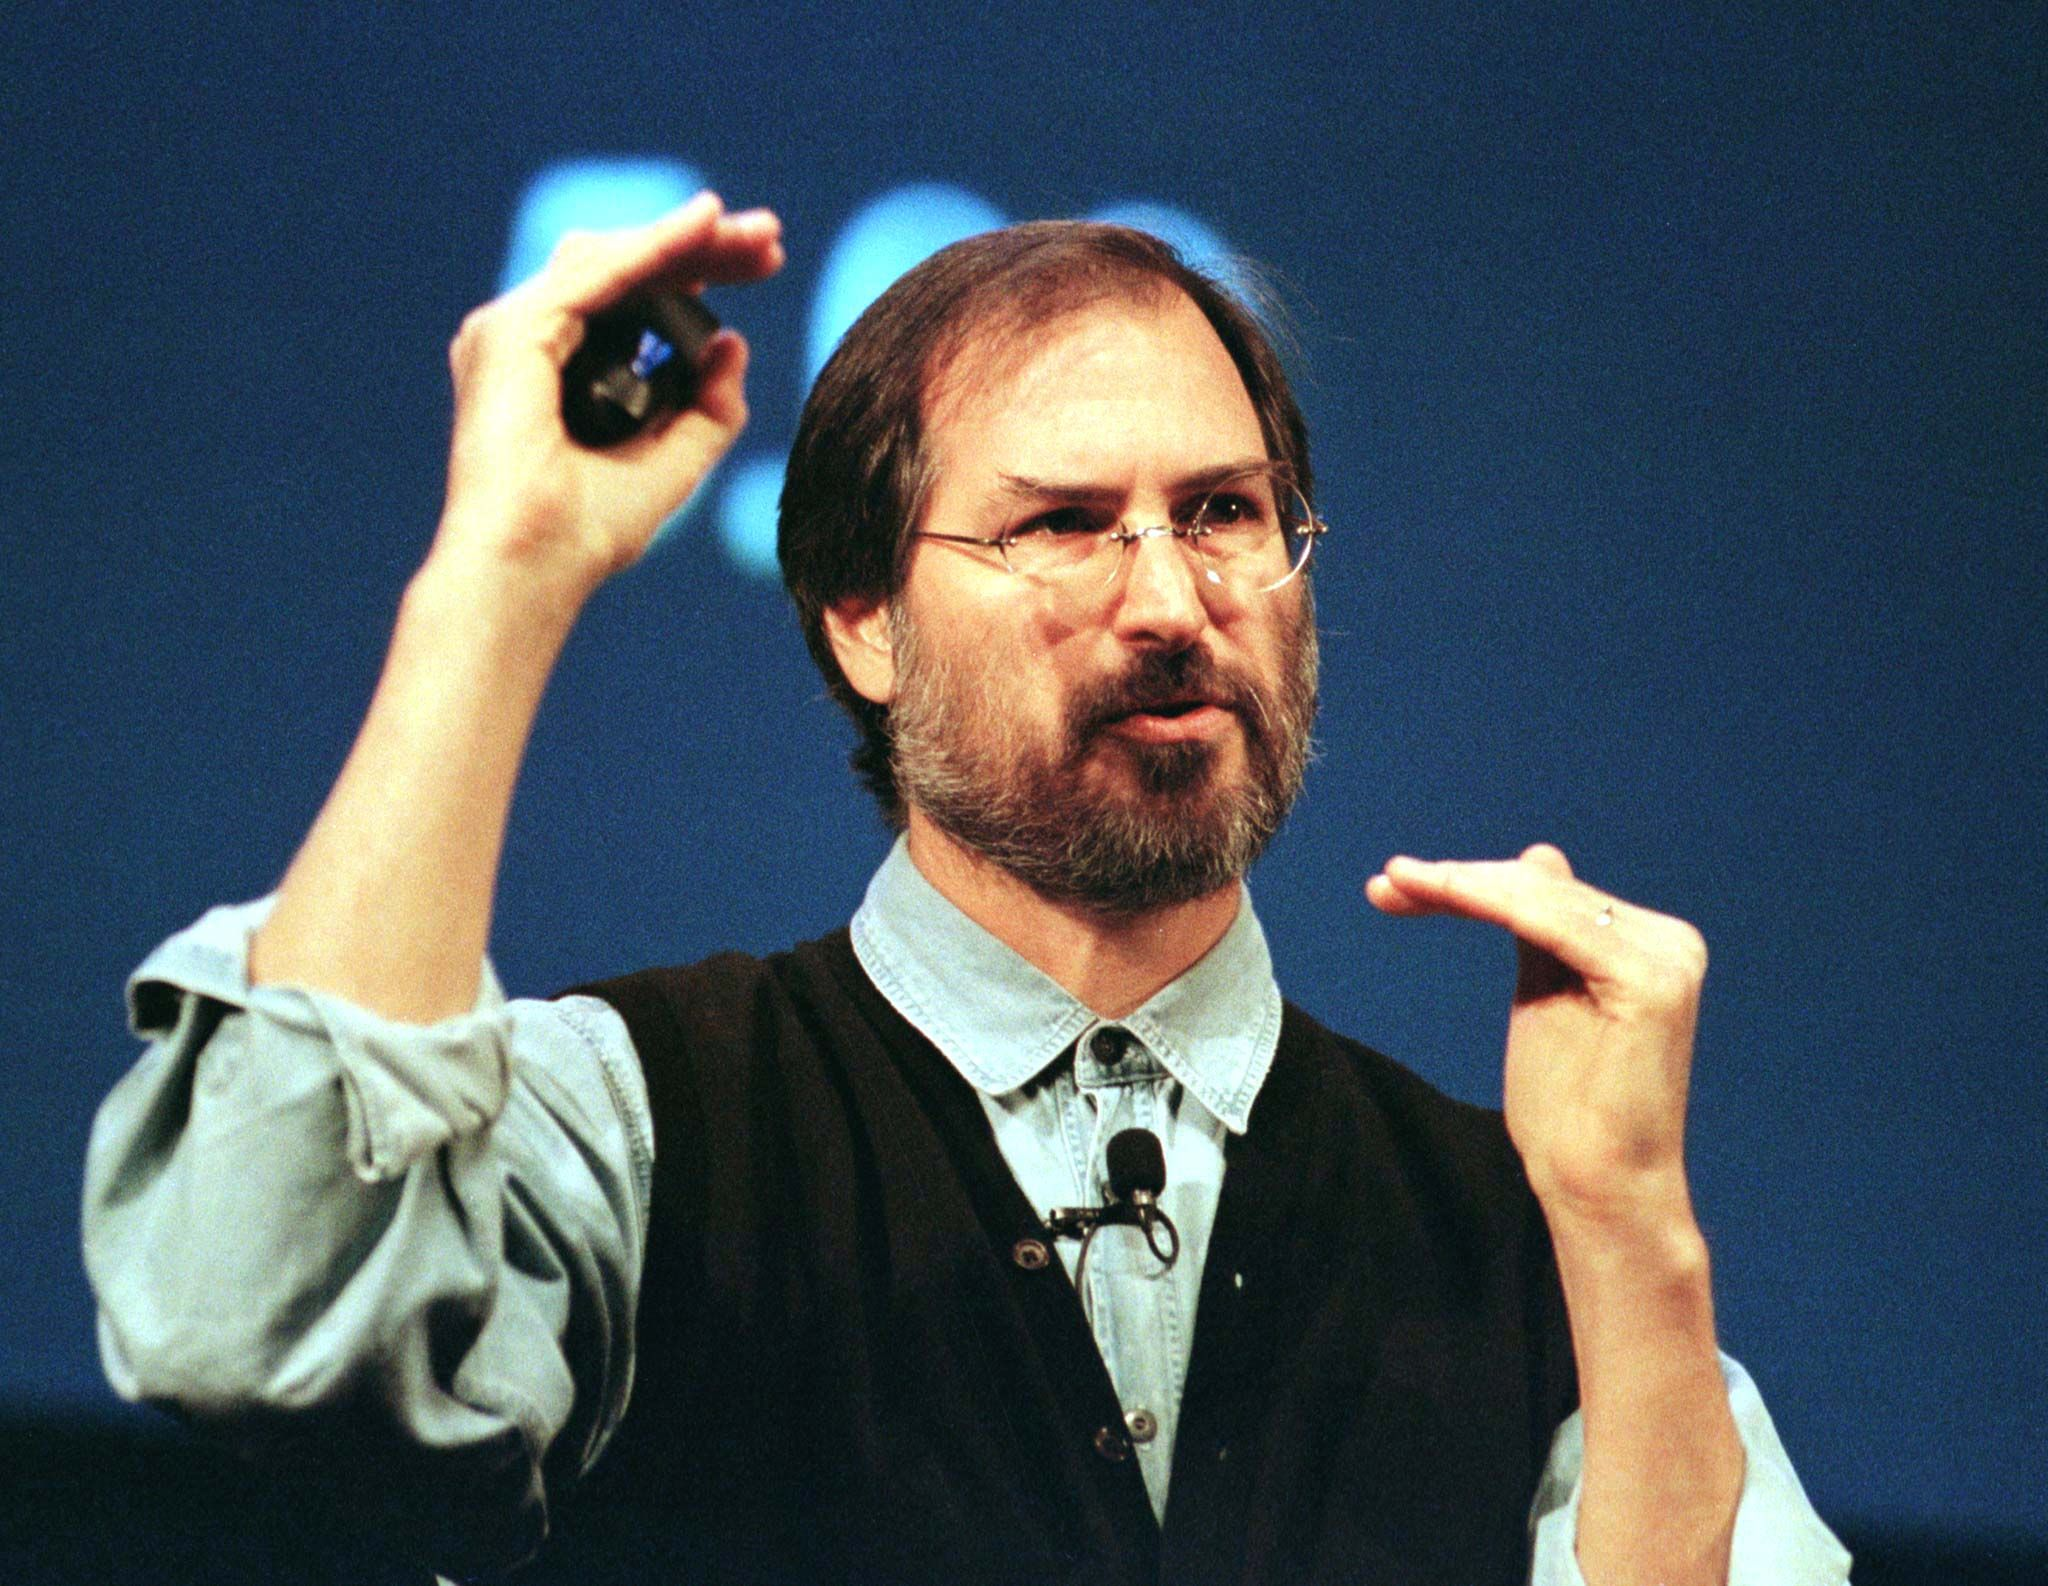 04_01_steve_jobs_apple_01